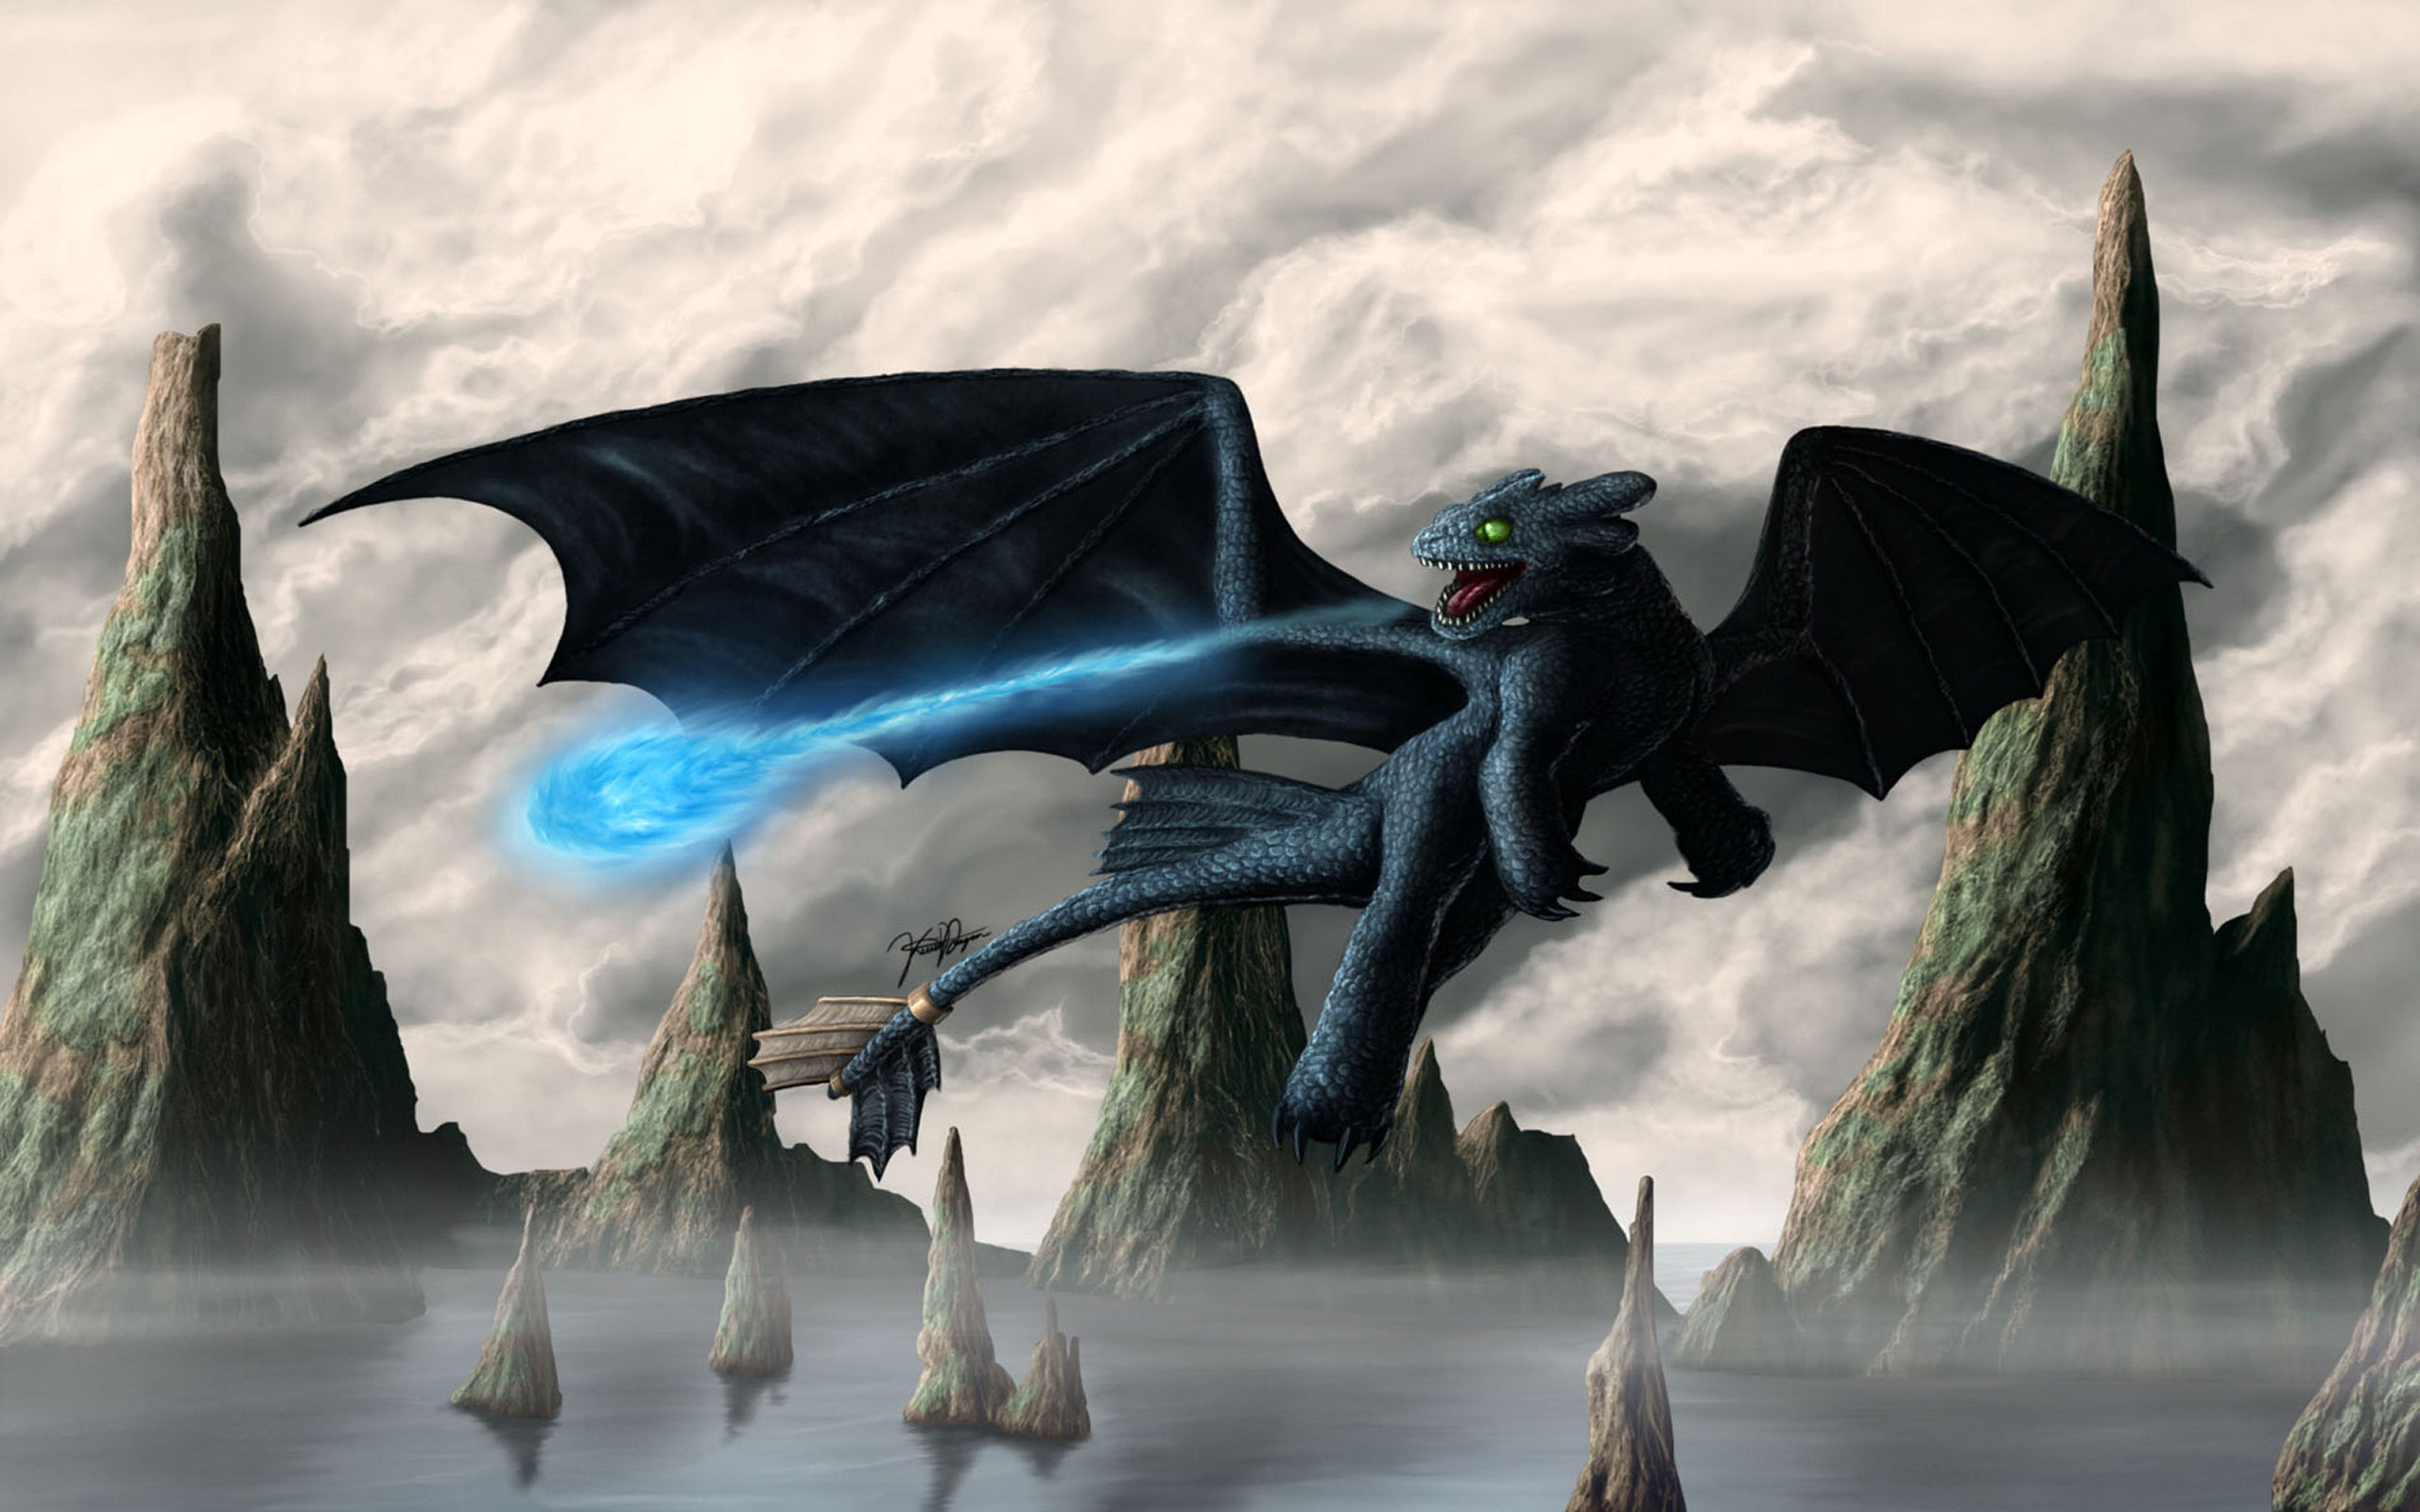 toothless-how-to-train-your-dragon-full-hd-wallpapers | wallpaper.wiki